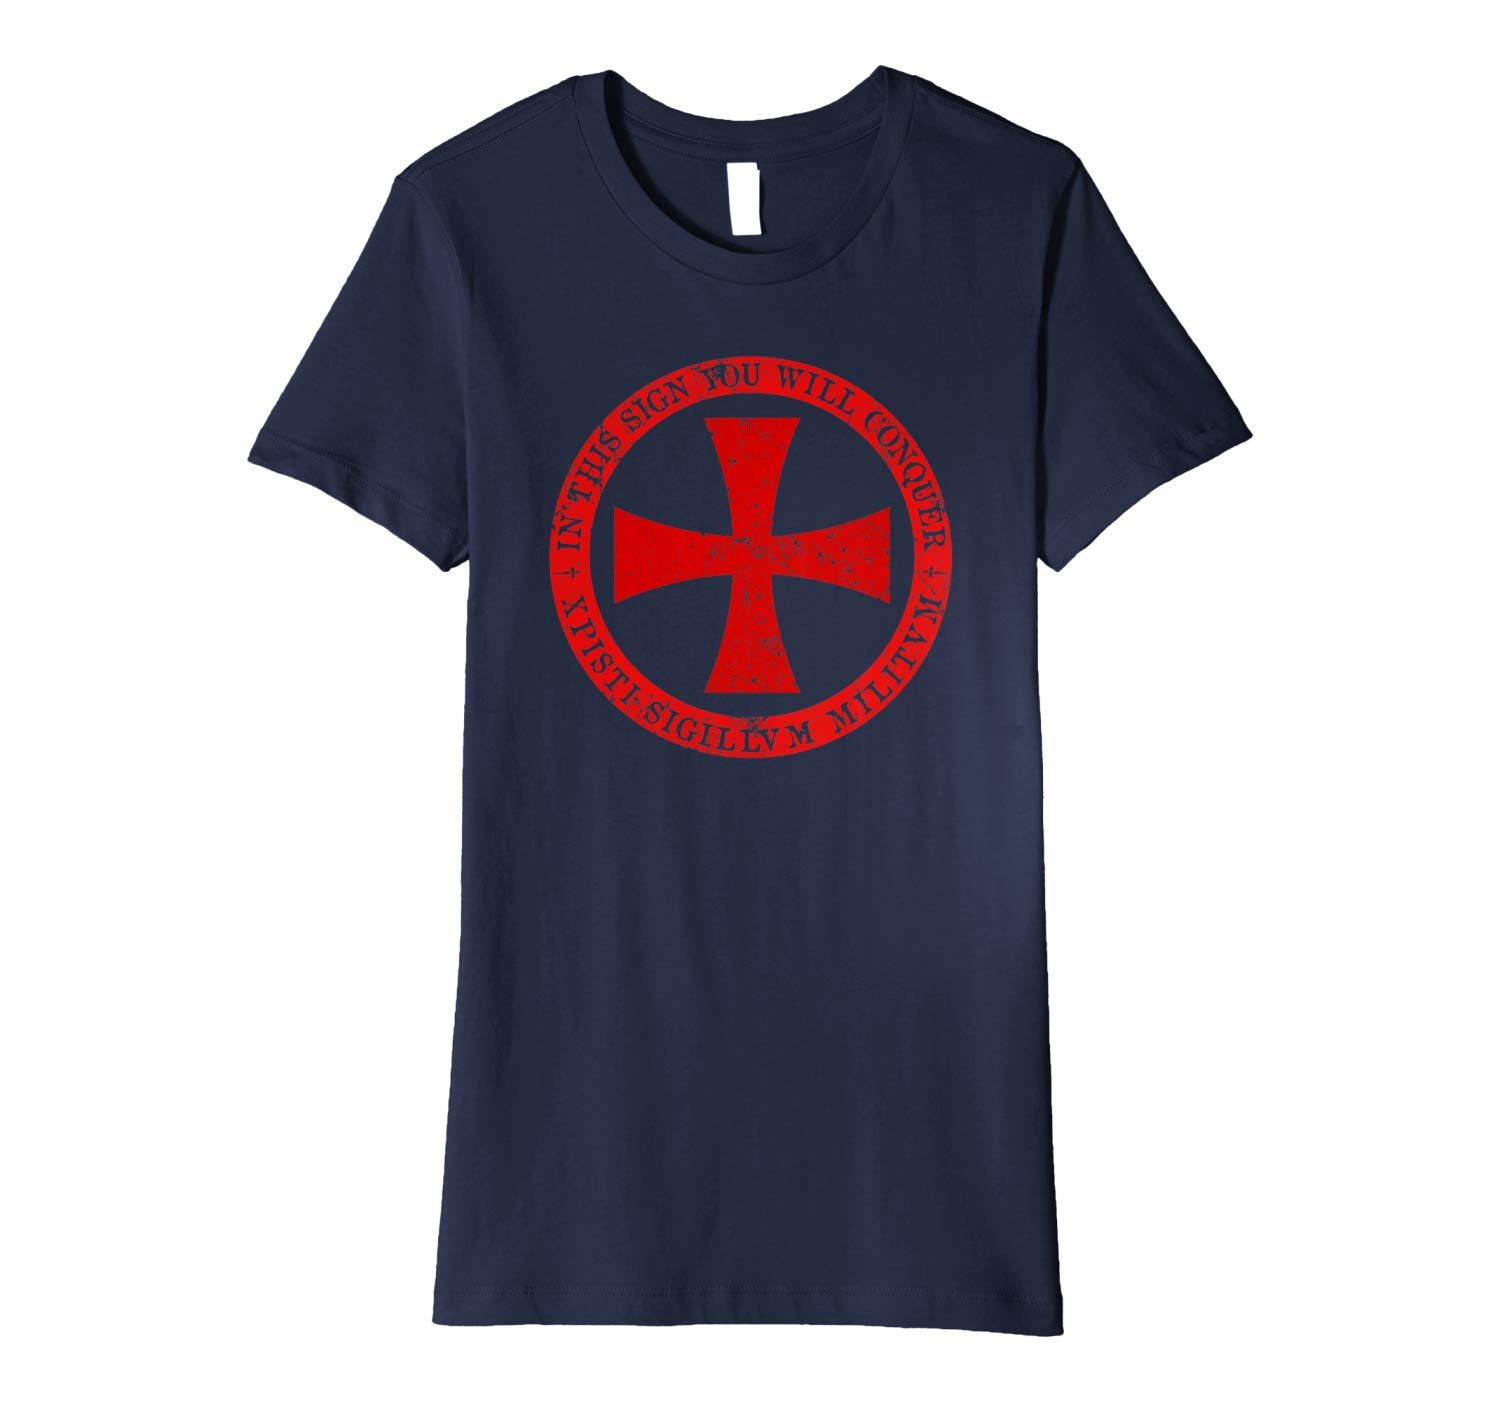 Templar Knight T Shirt - Maltese Cross Shield Logo Tee